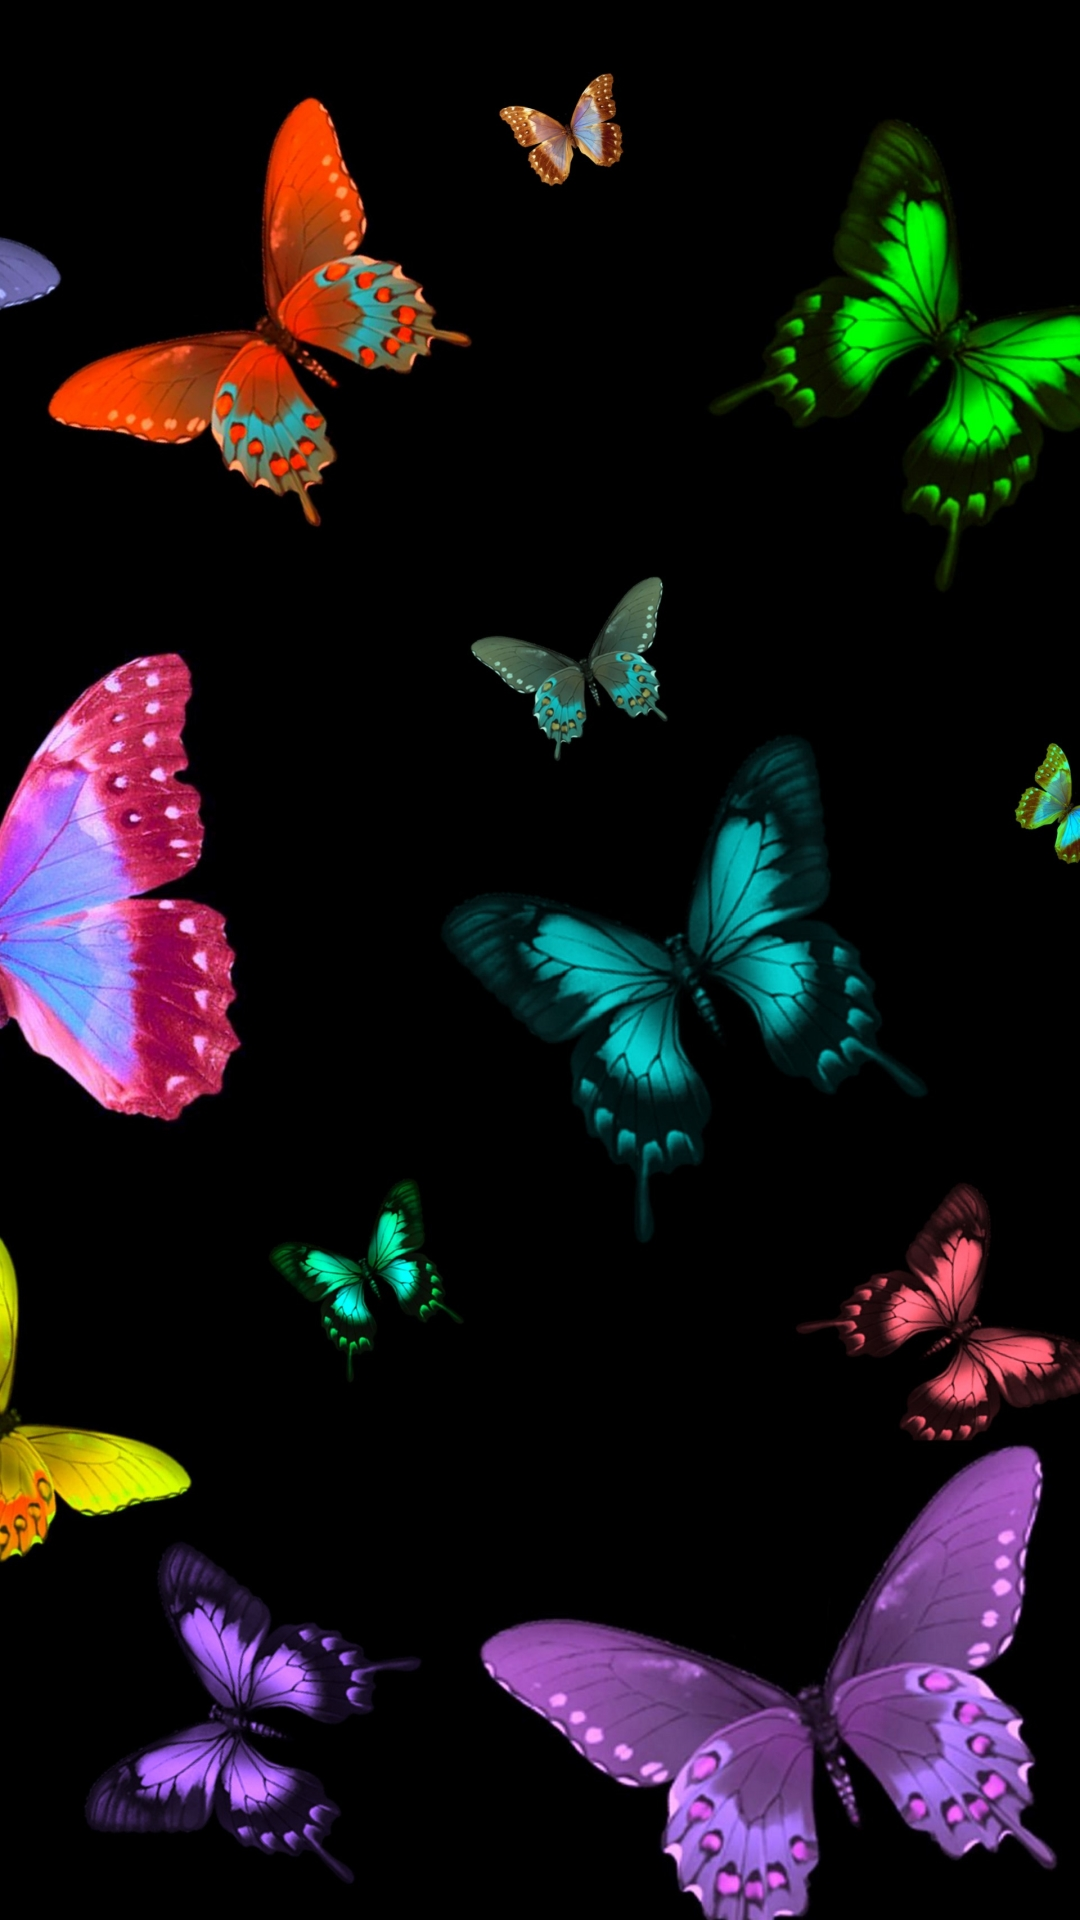 Butterflies On Black Background 985099 Hd Wallpaper Backgrounds Download